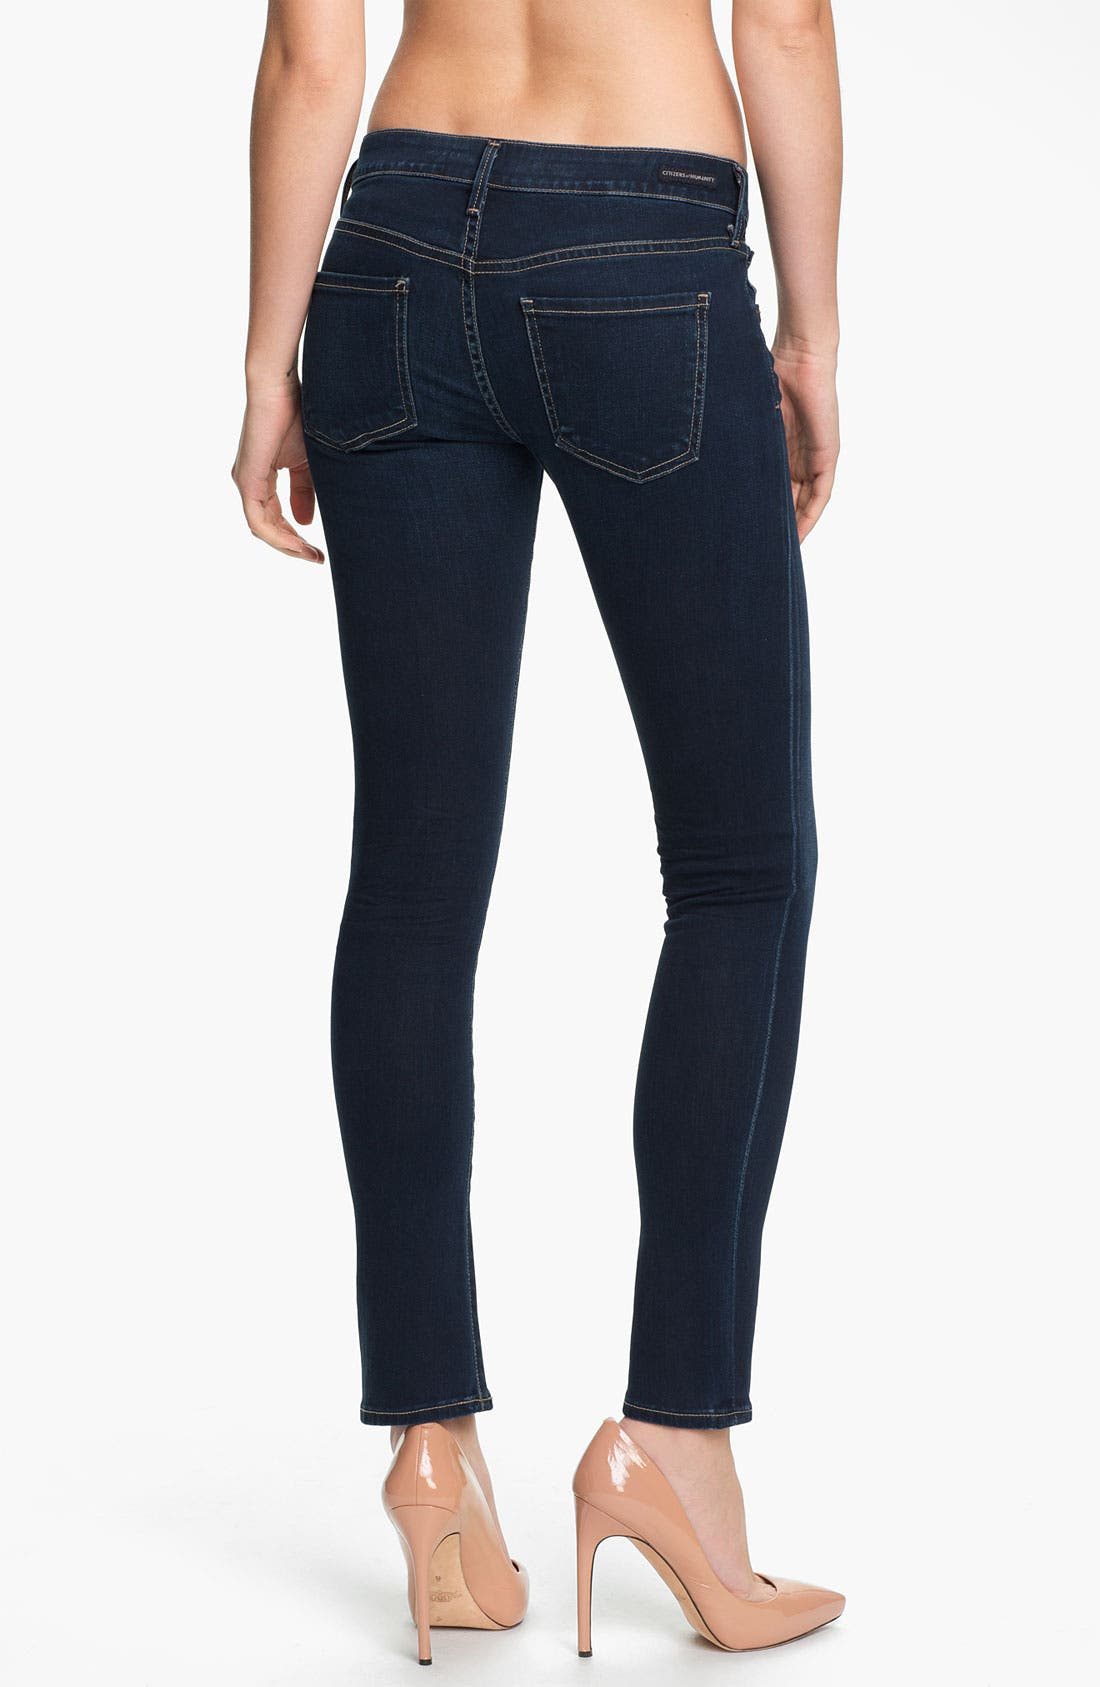 Alternate Image 2  - Citizens of Humanity 'Racer' Crop Skinny Jeans (Starry)